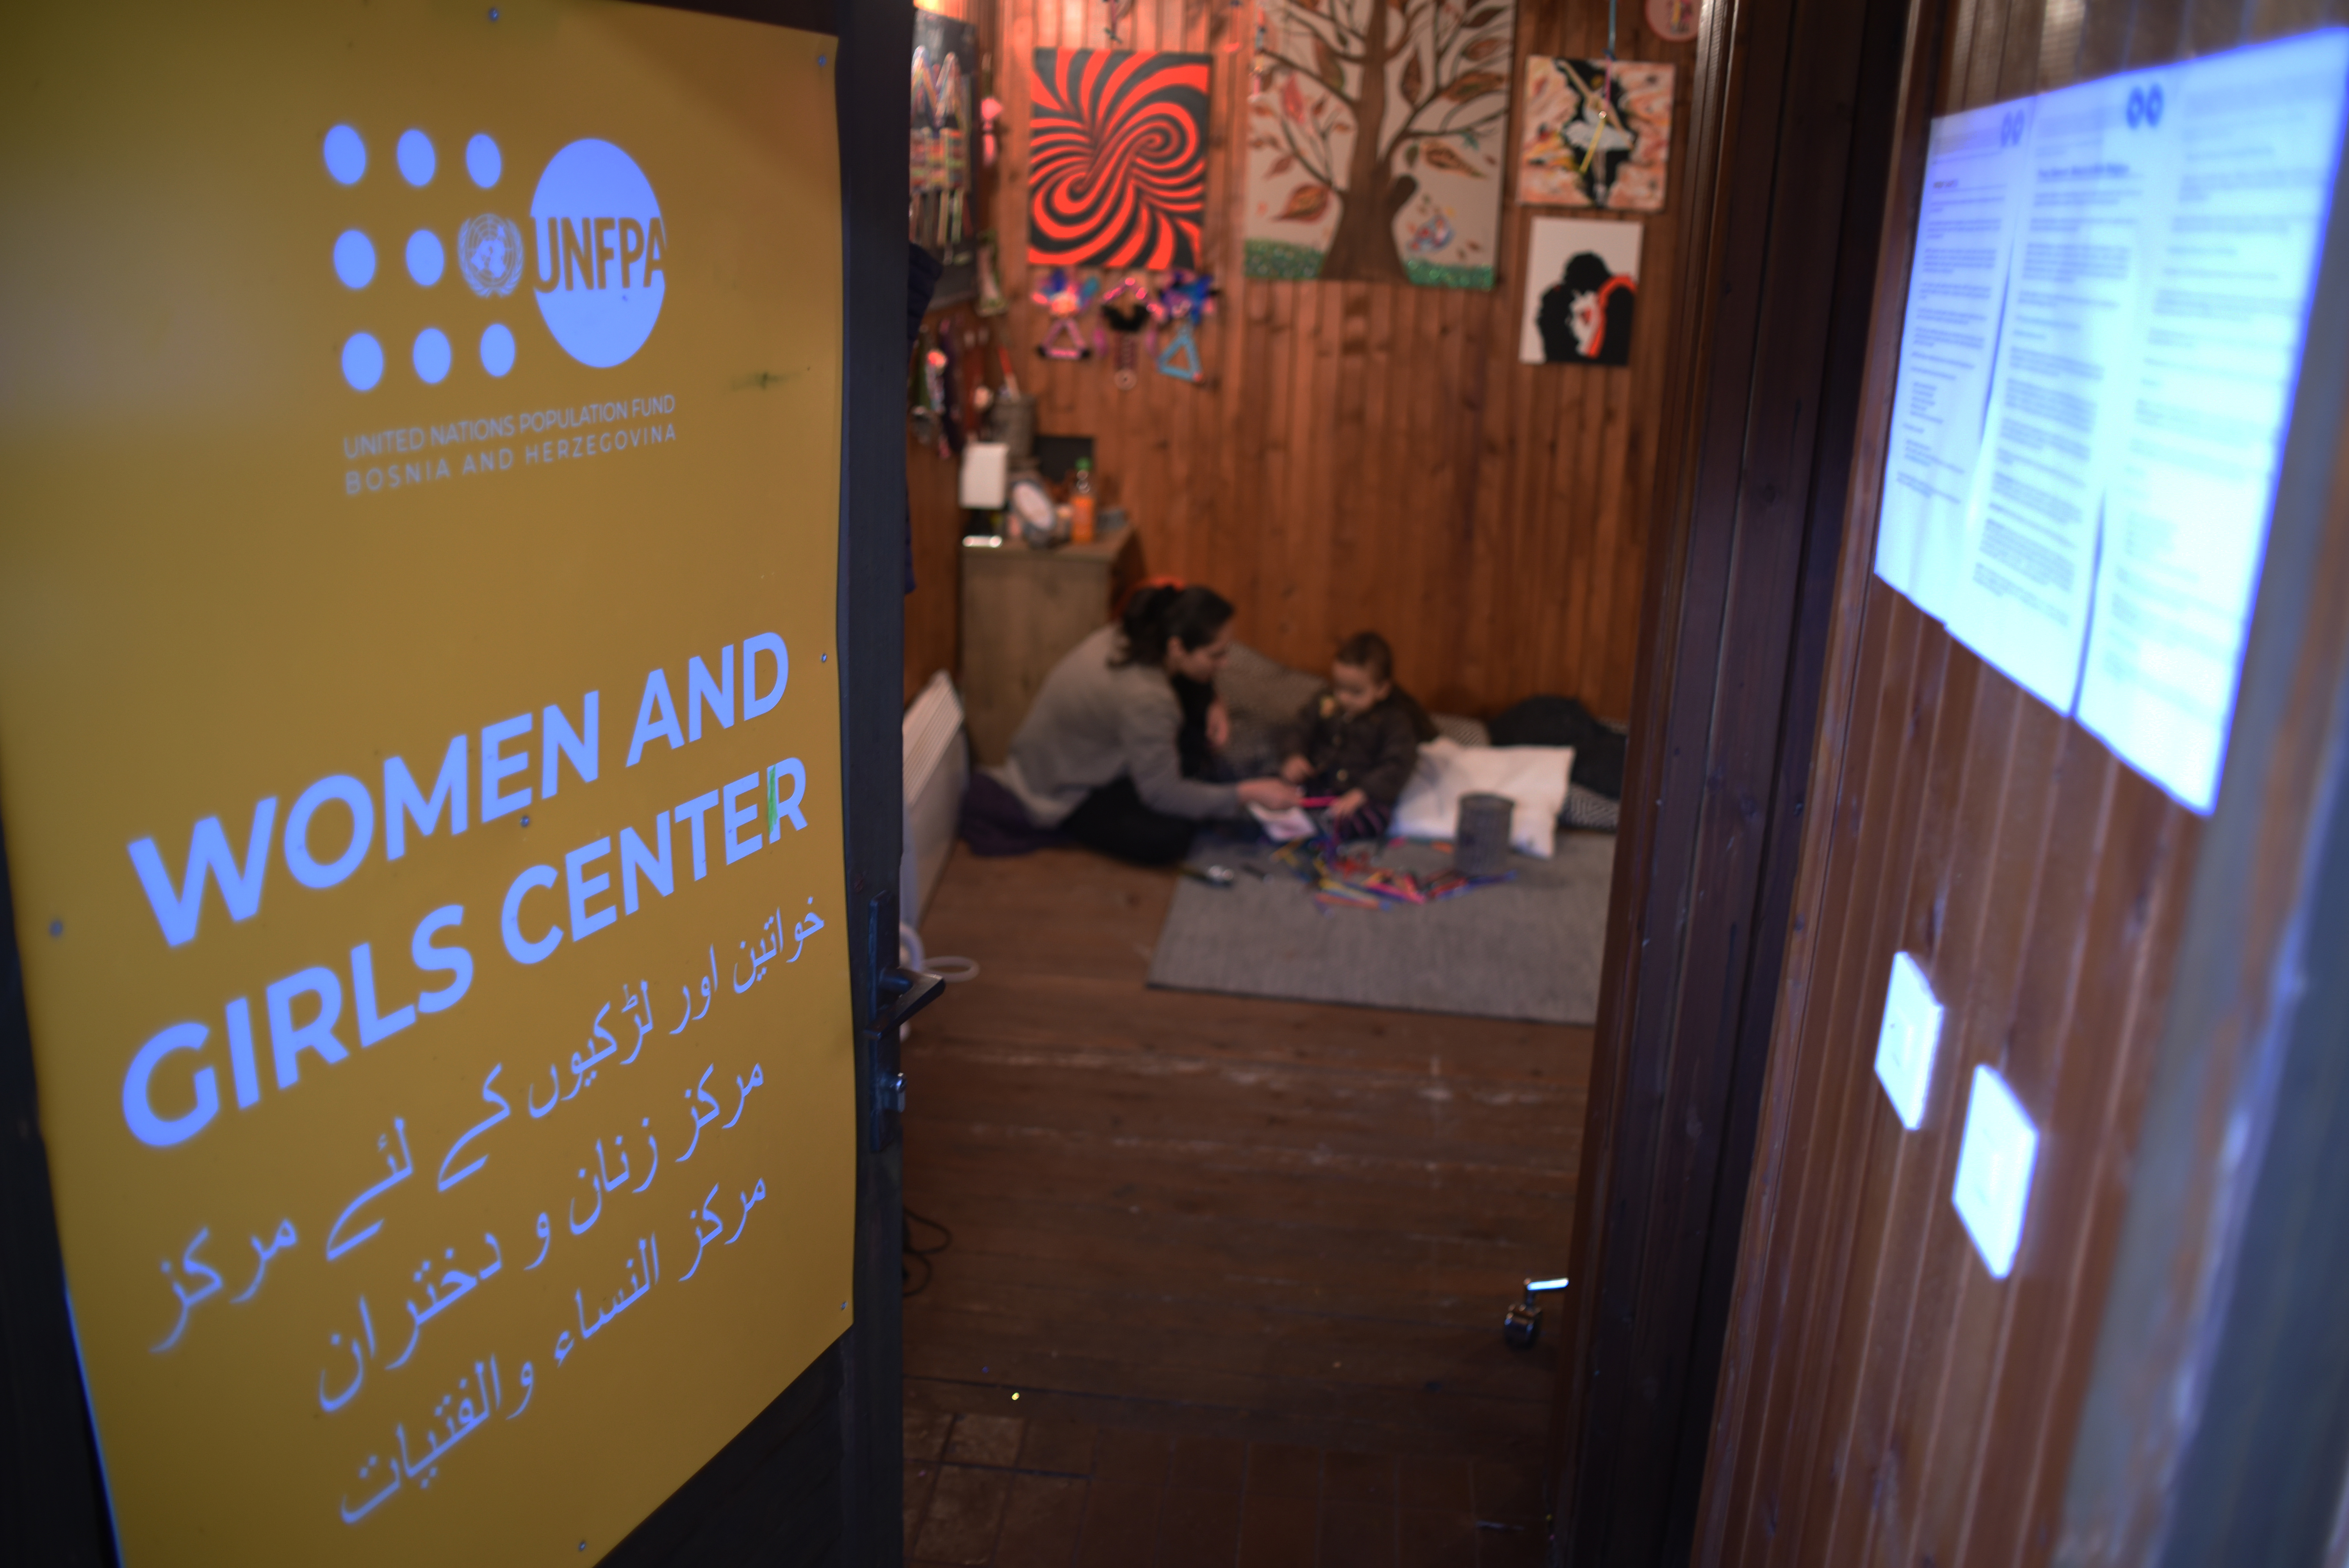 Women and girls centre in Bosnia and Herzegovina